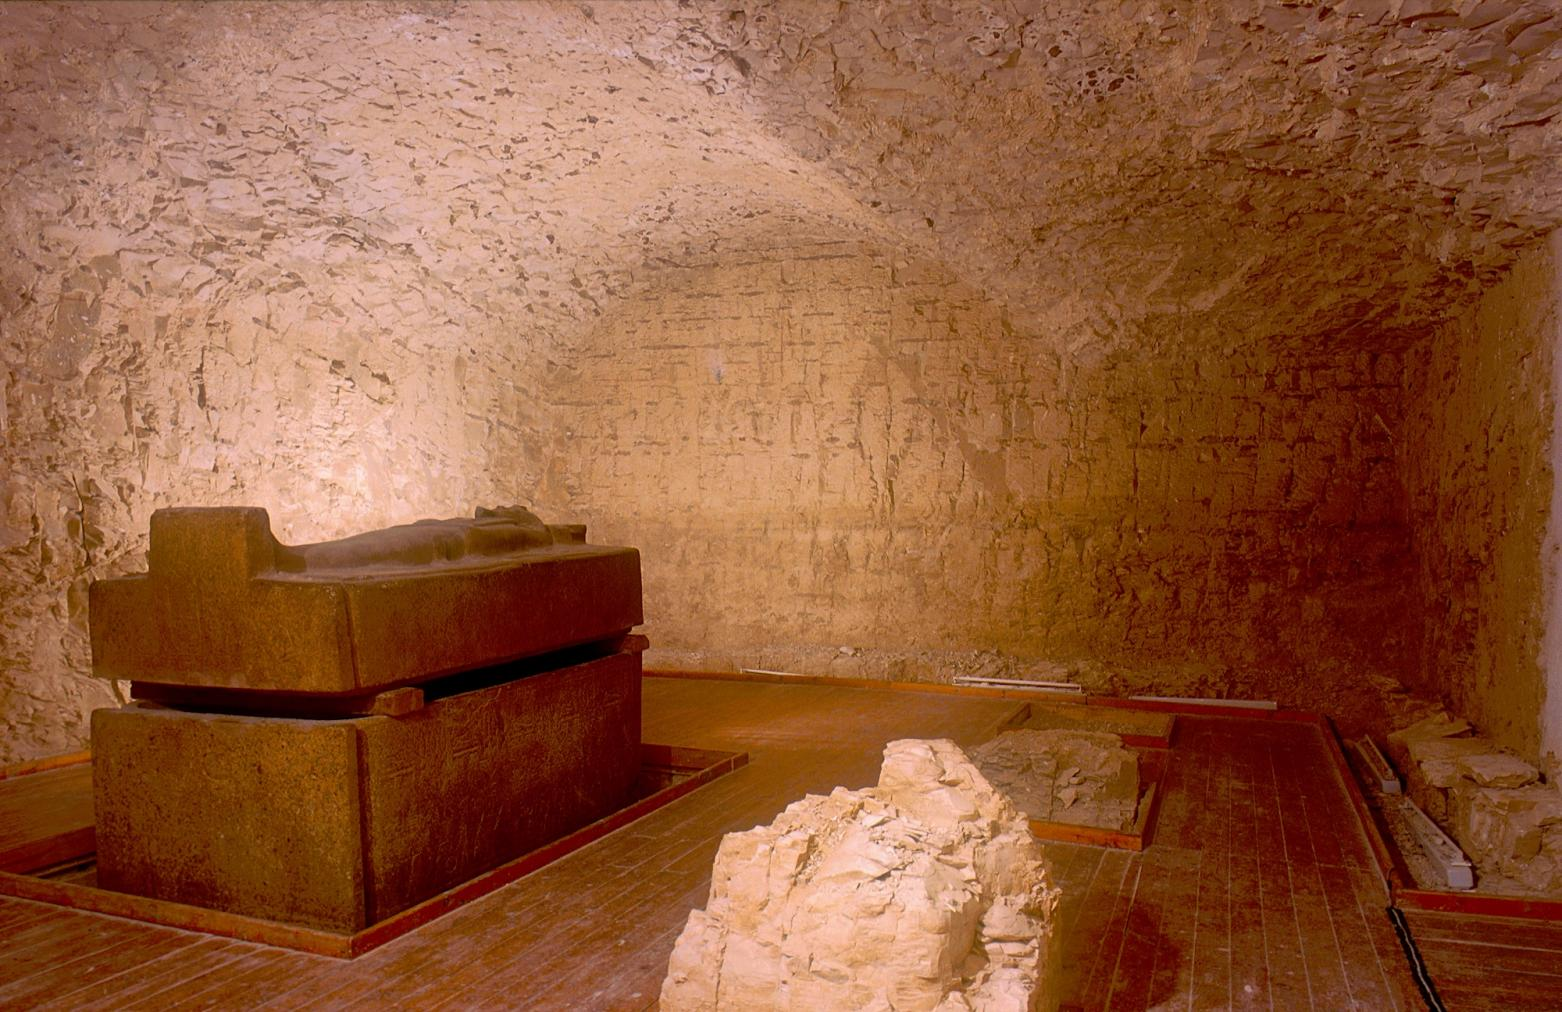 Sarcophagus in undecorated burial chamber with modern flooring.